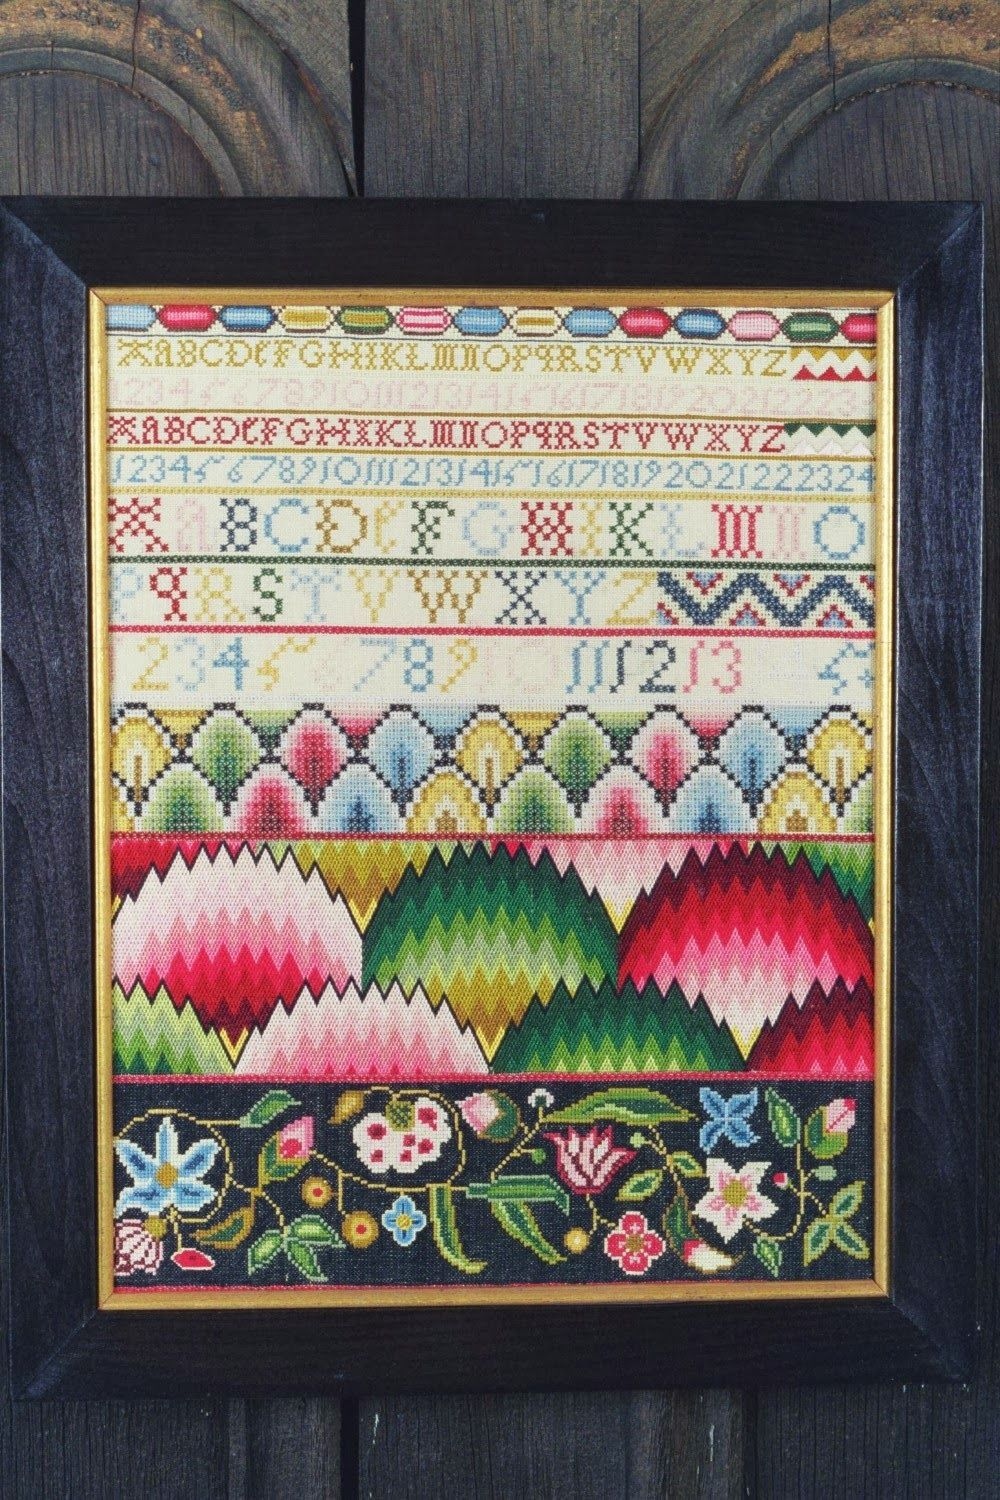 Our Scarlet Letter Years Gallery Cross stitch samplers